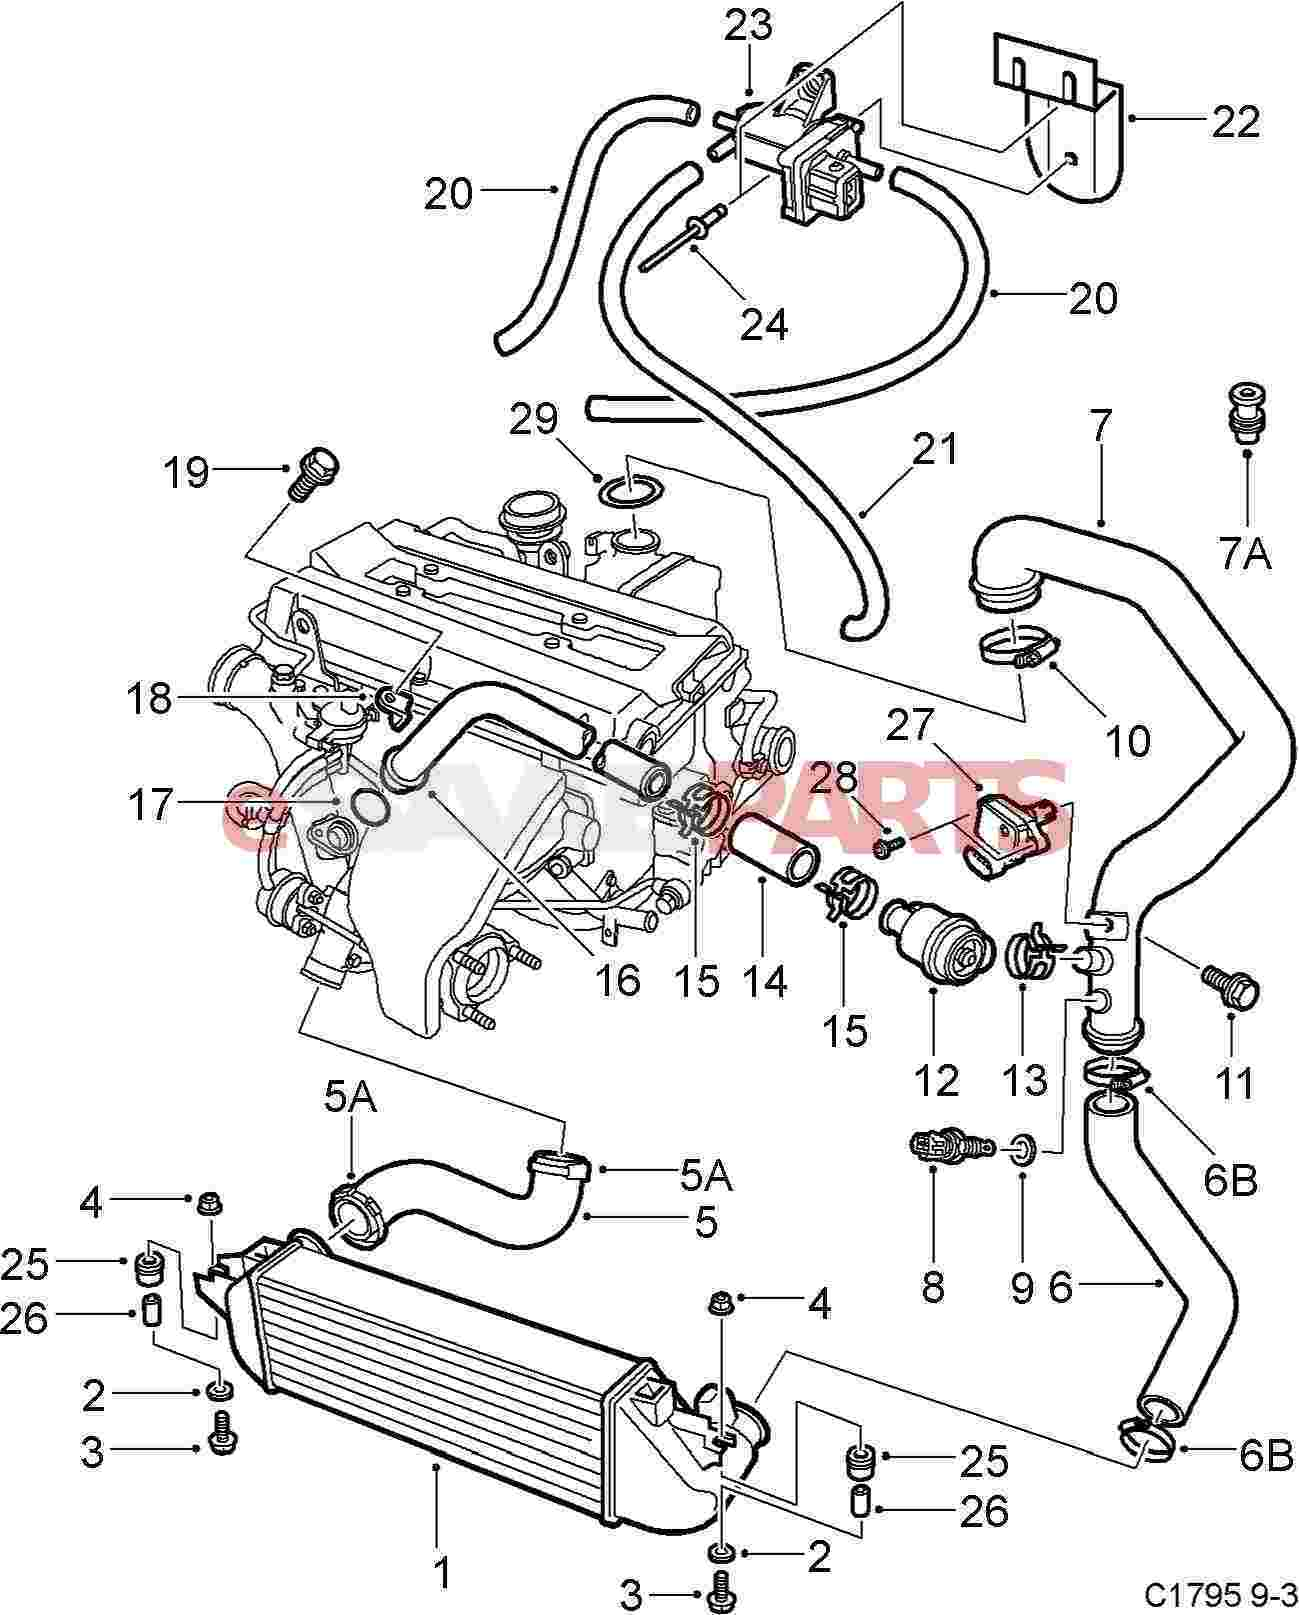 4670352 saab cl genuine saab parts from esaabparts saab 9 3 parts diagram saab